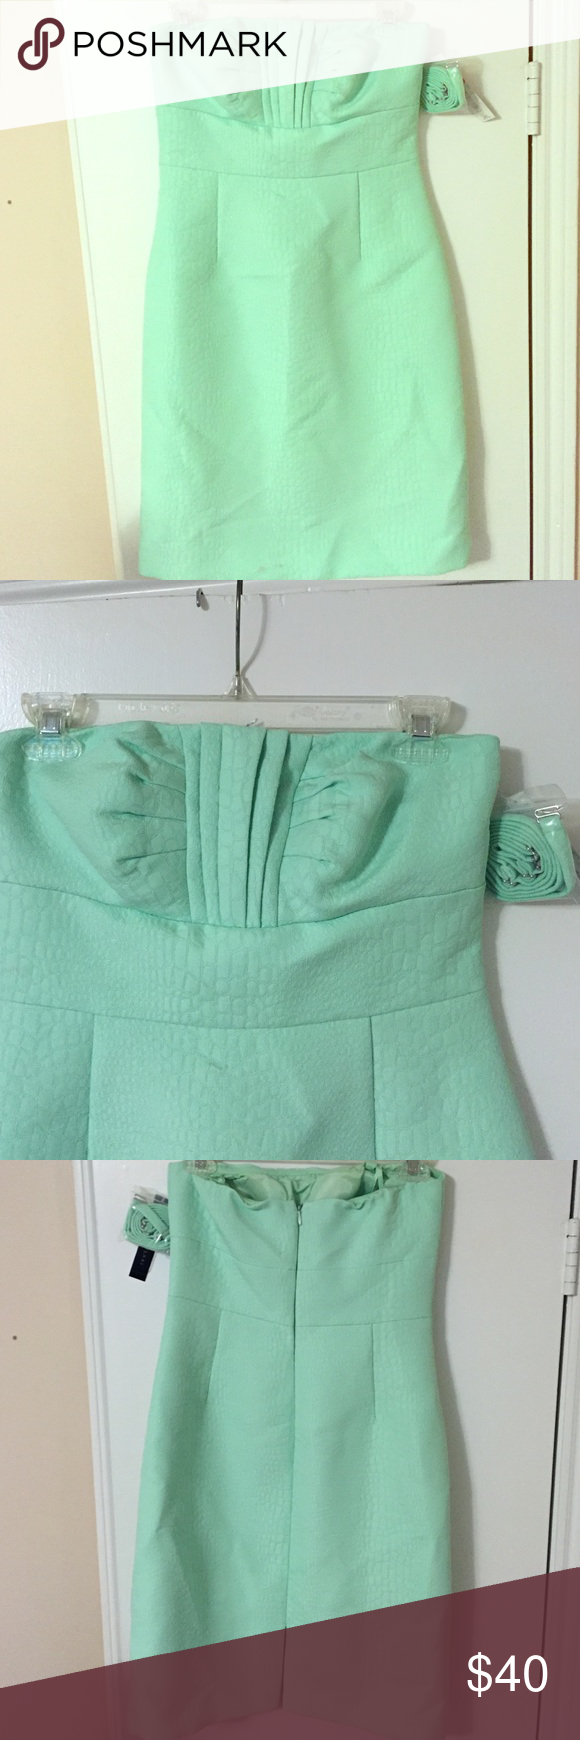 NWT Antonio Melani dress size 4 This is brand new and elegant light green ANTONIO MELANI dress, great for formal occasions. Strapless but there is an extra bag of straps to wear on as well. There is a little stain which is not noticeable at the bottom (in the last picture) due to handling, it can come off easily once cleaned. Please ask if you are interested and would like to bundle and get discounts. Thanks :) ANTONIO MELANI Dresses Midi